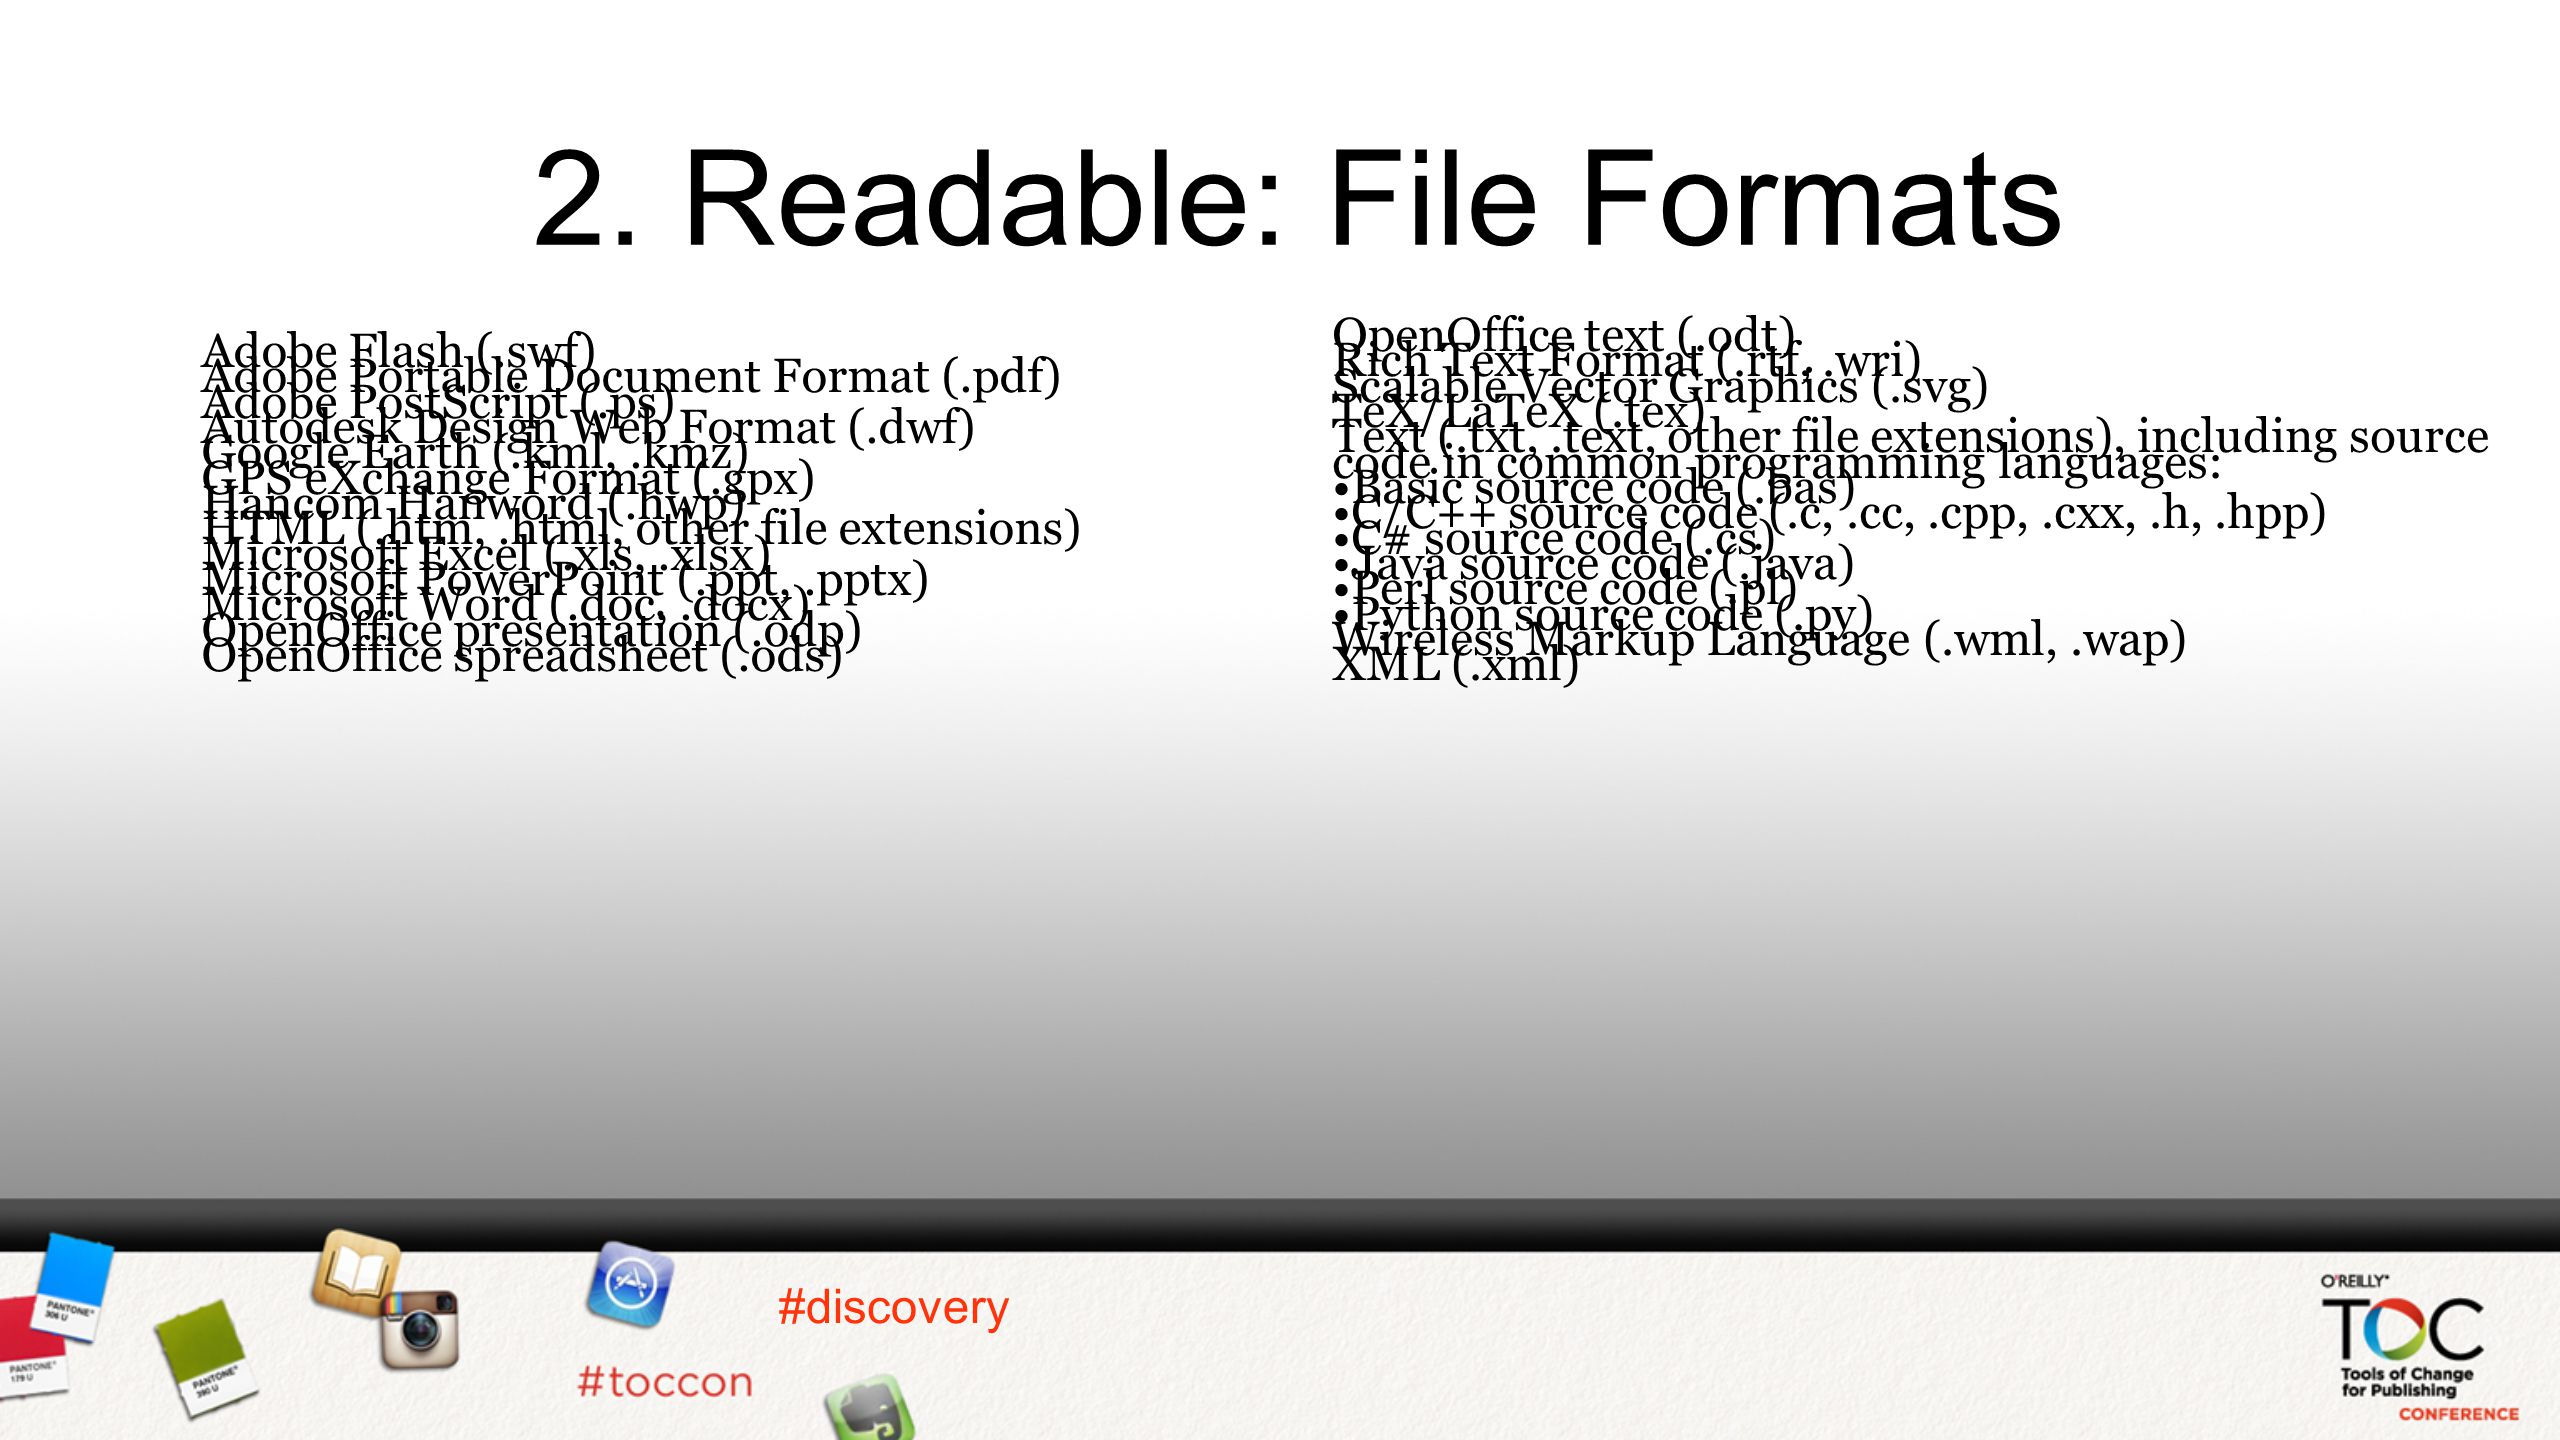 #discovery 2. Readable: File Formats OpenOffice text (.odt) Rich Text Format (.rtf,.wri) Scalable Vector Graphics (.svg) TeX/LaTeX (.tex) Text (.txt,.